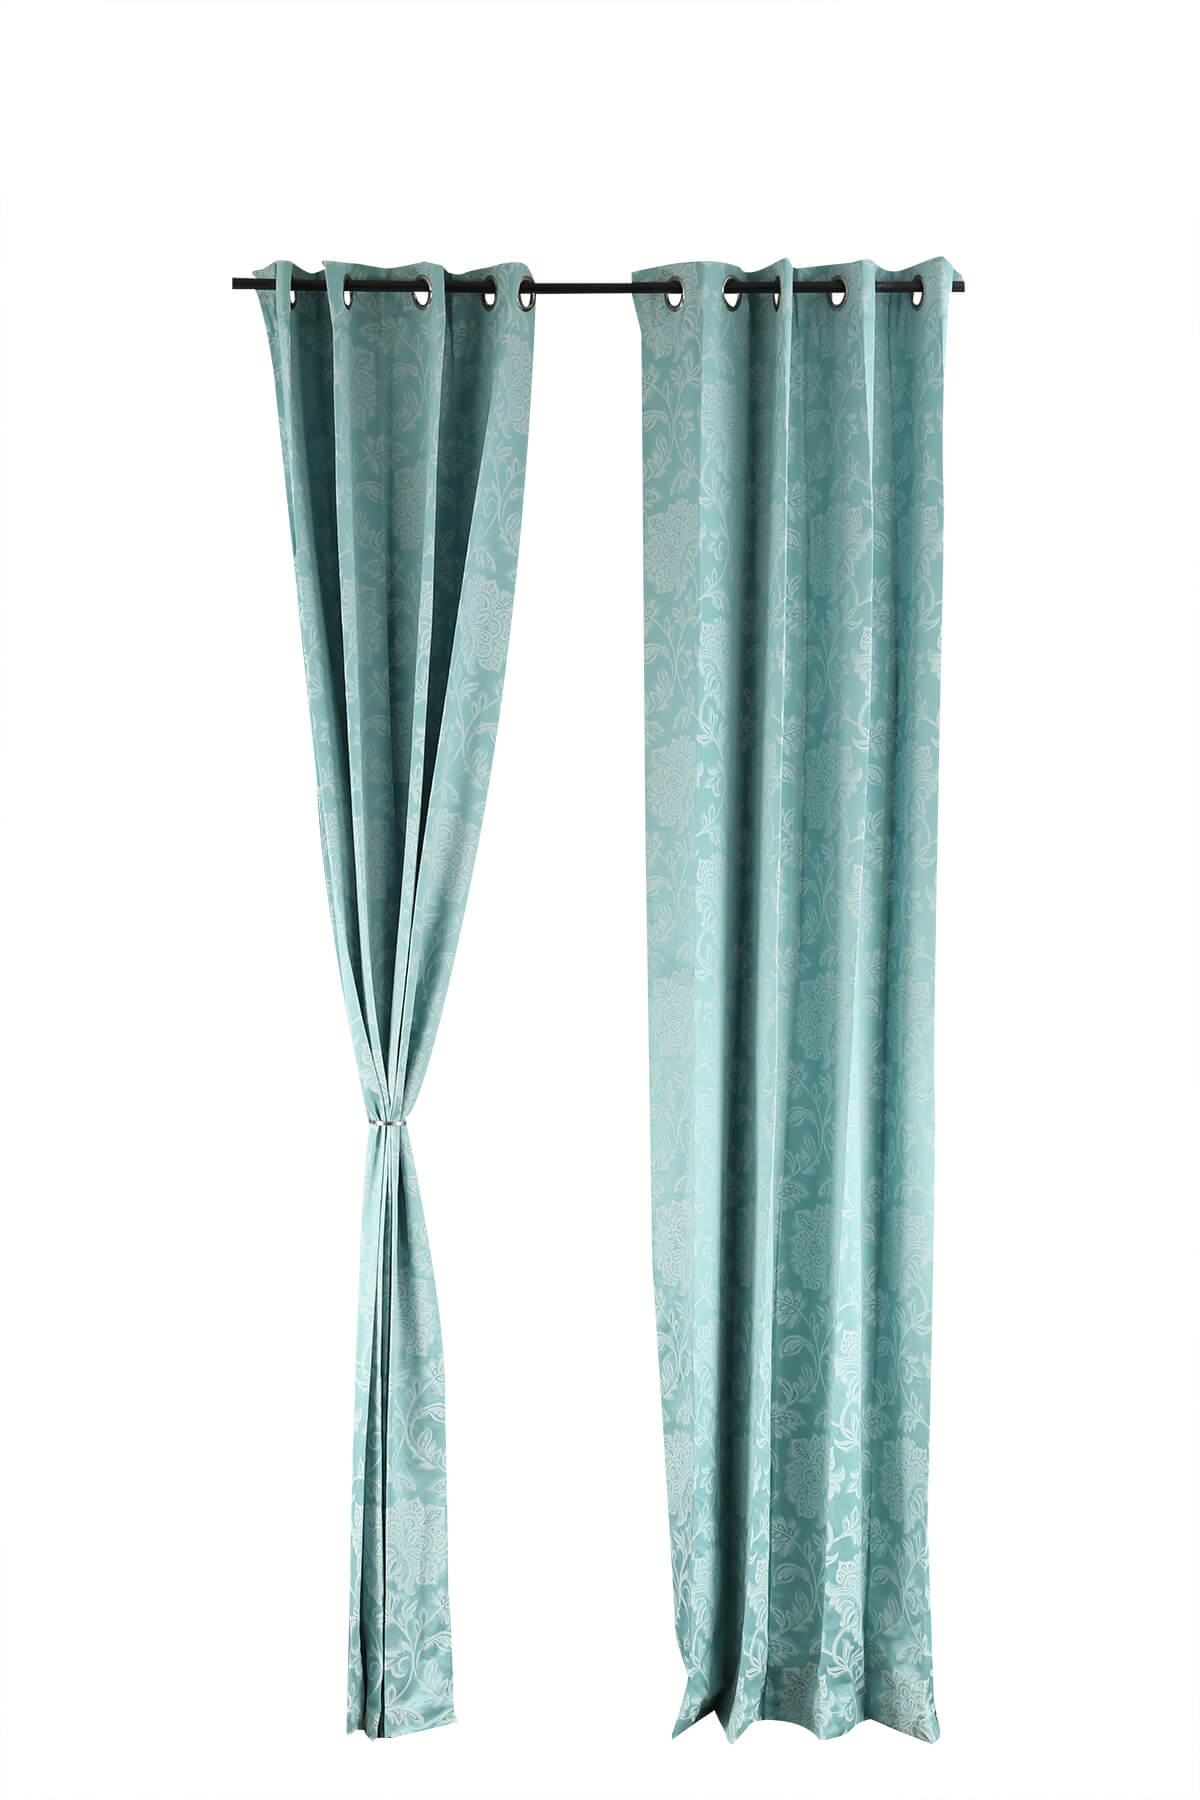 Florina Door Curtain Sea Green Polyester Door Curtains in Sea Green Colour by Living Essence